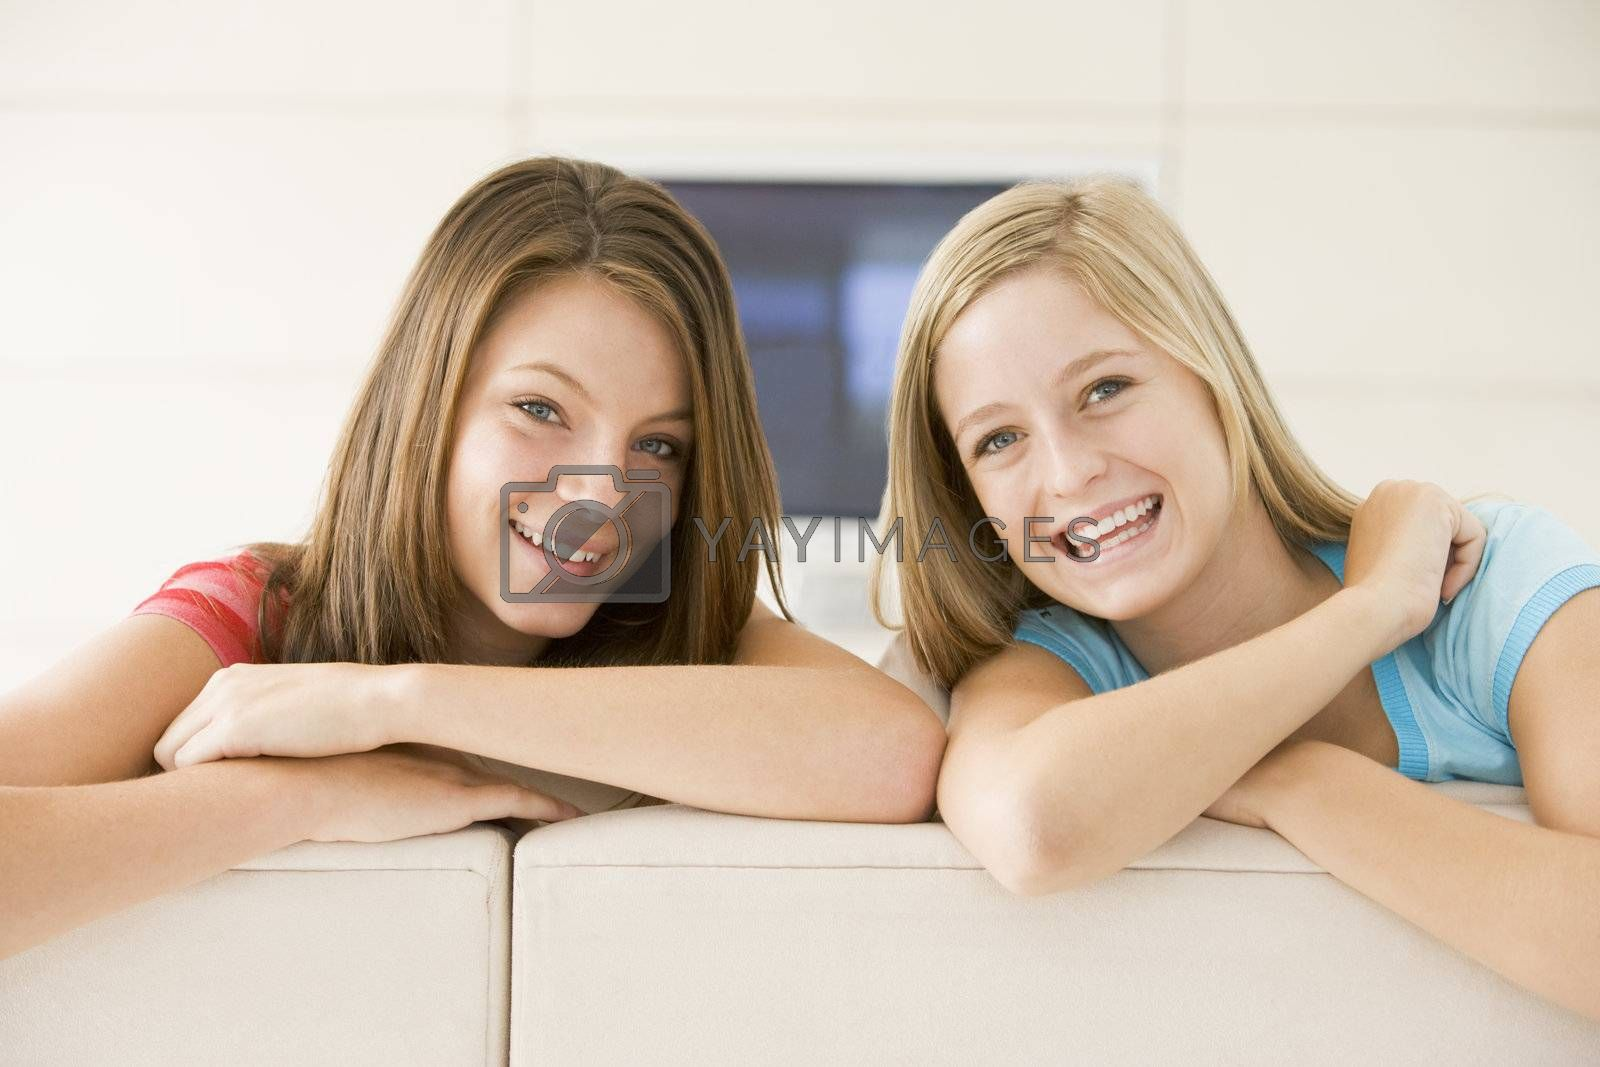 Two women in living room smiling by MonkeyBusiness